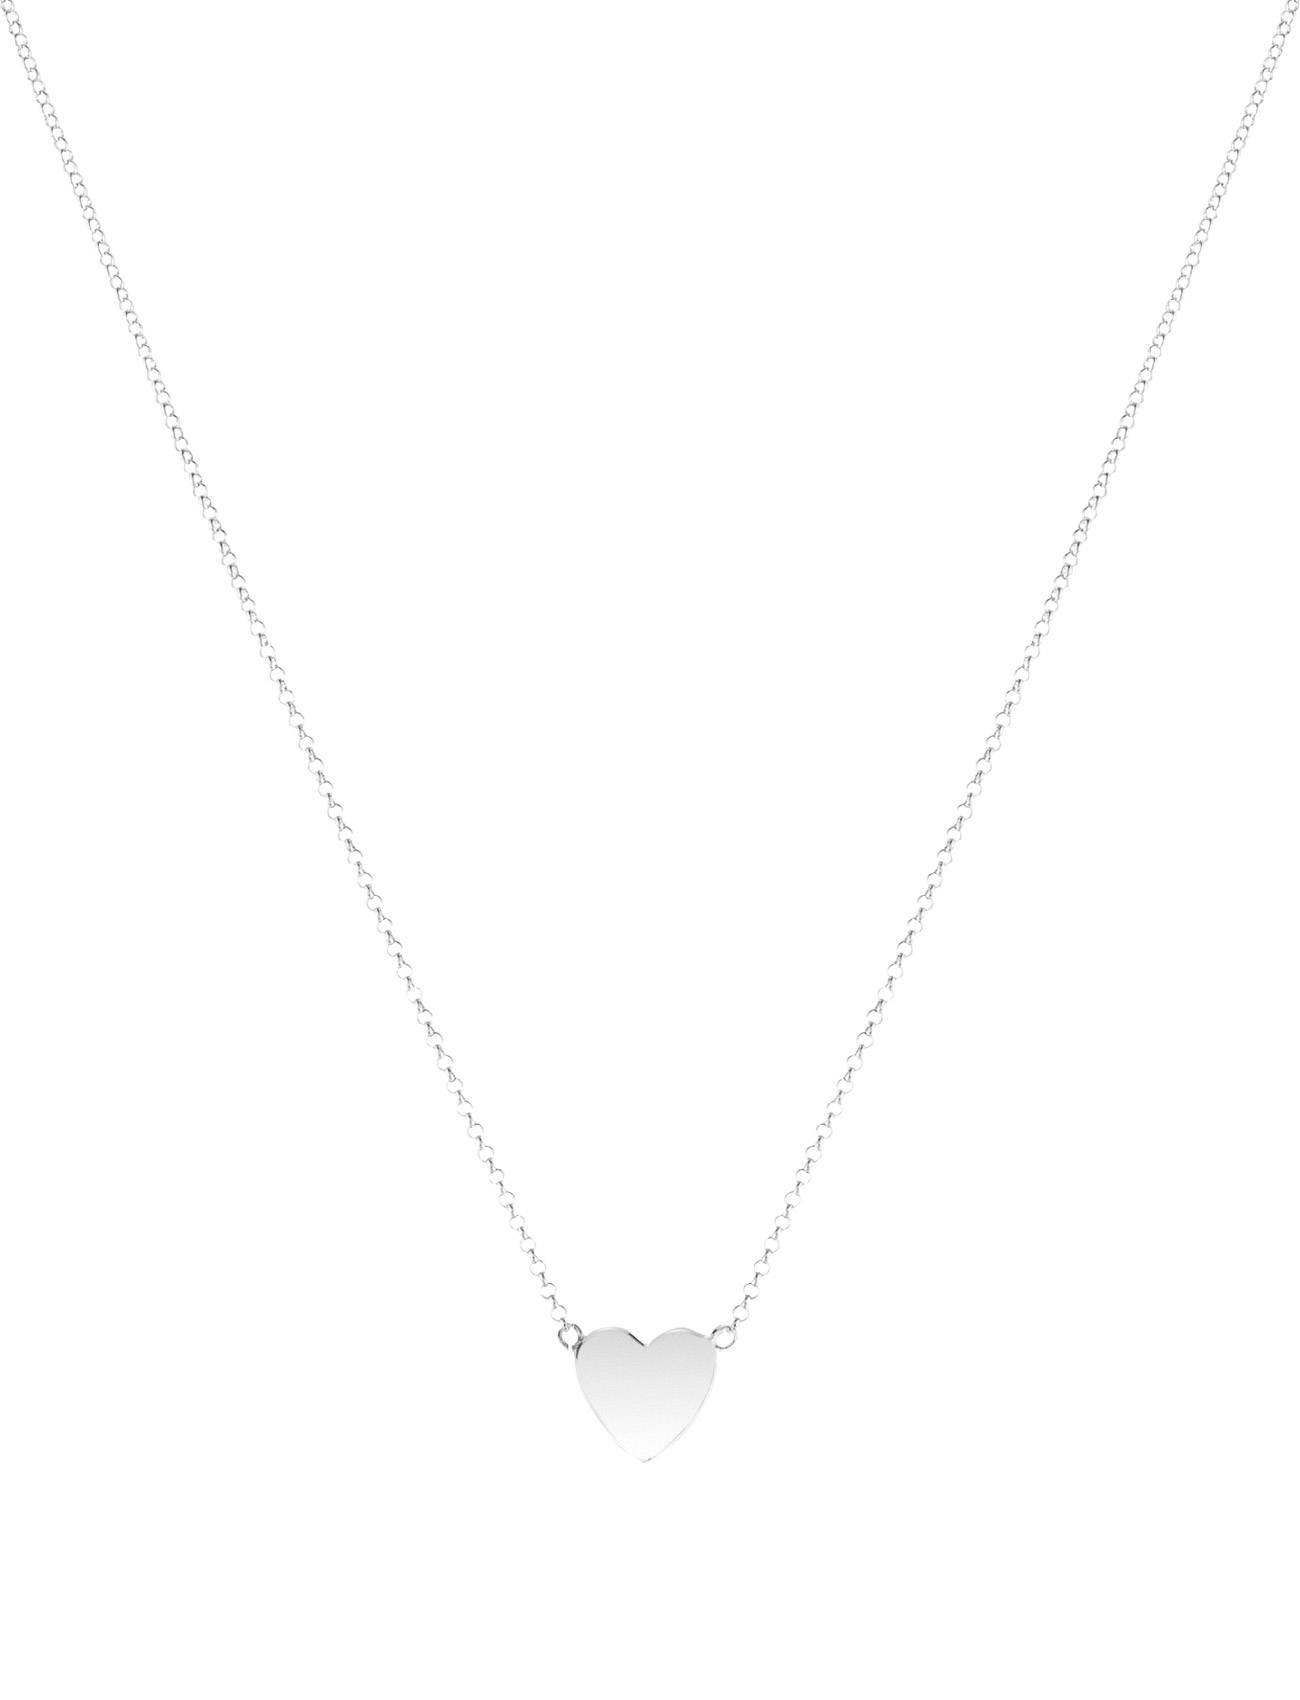 SOPHIE by SOPHIE Mini Heart Necklace